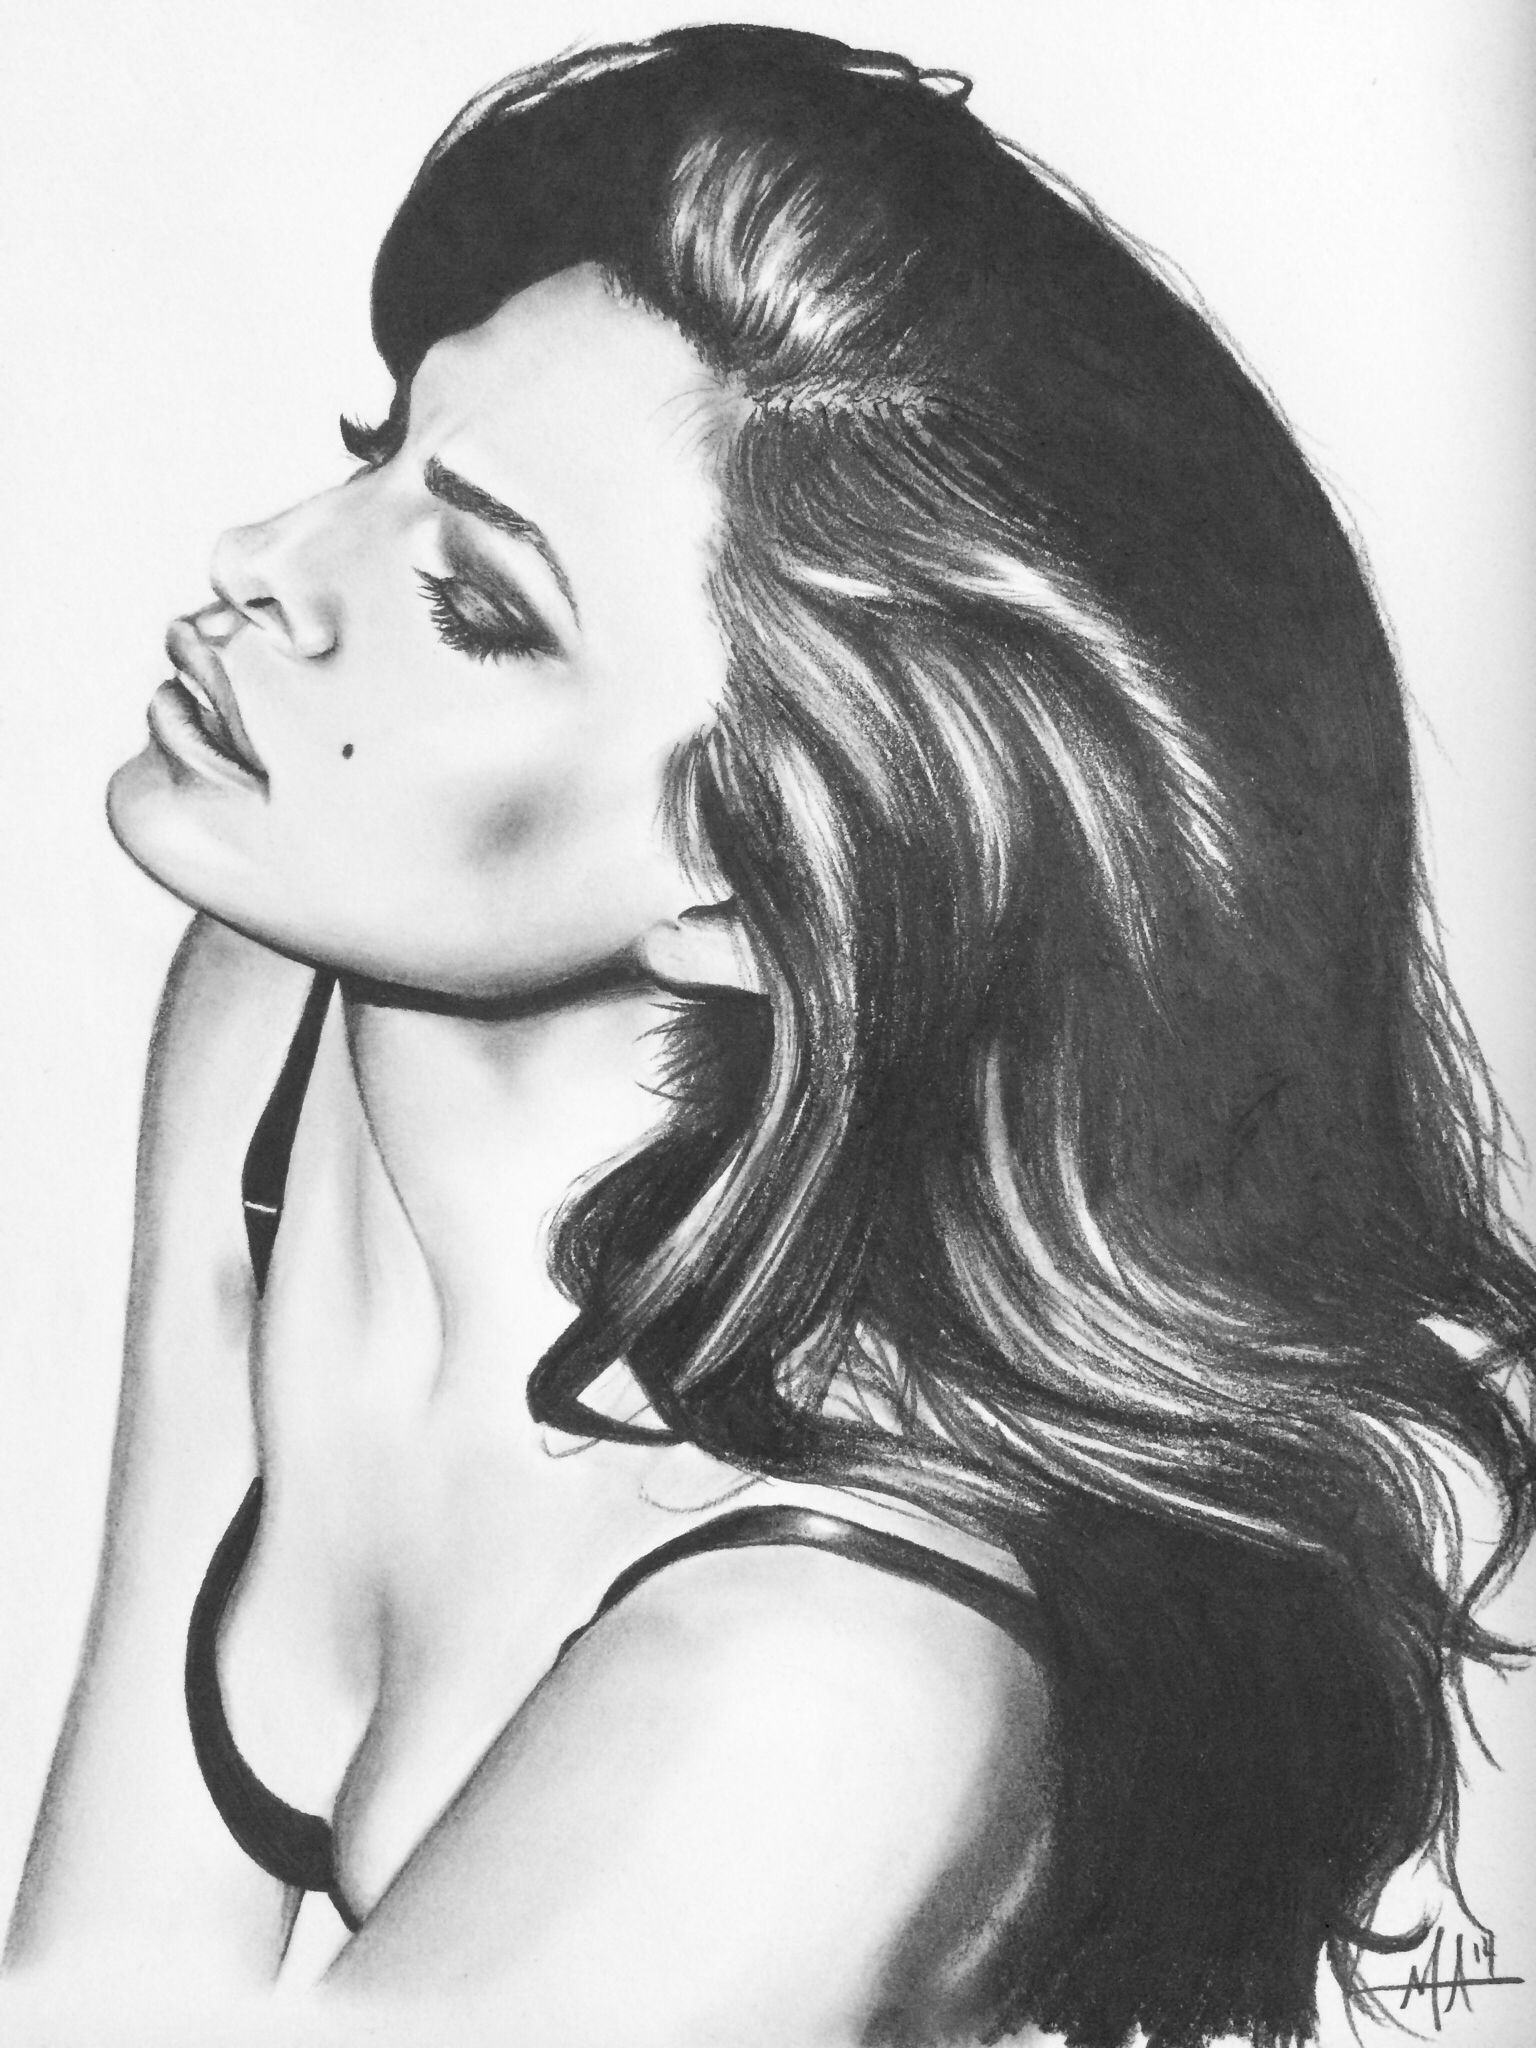 Eva mendes drawing Drawing of beautiful model rockabilly retro 50 s